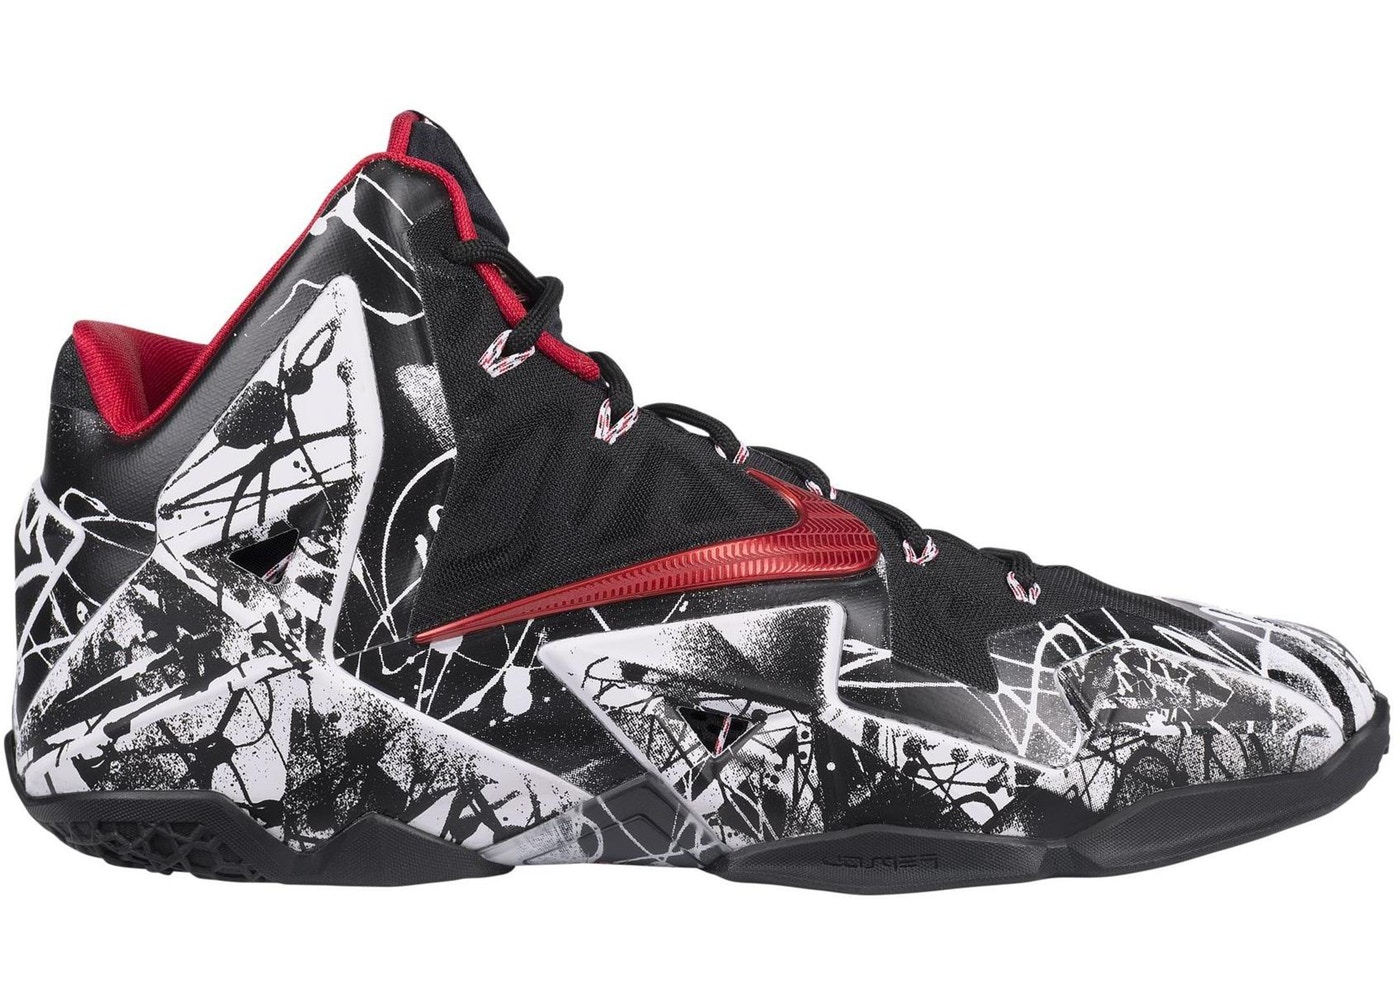 ナイキ NIKE レブロン スニーカー 【 LEBRON 11 GRAFFITI WHITE UNIVERSITY REDBLACK 】 メンズ